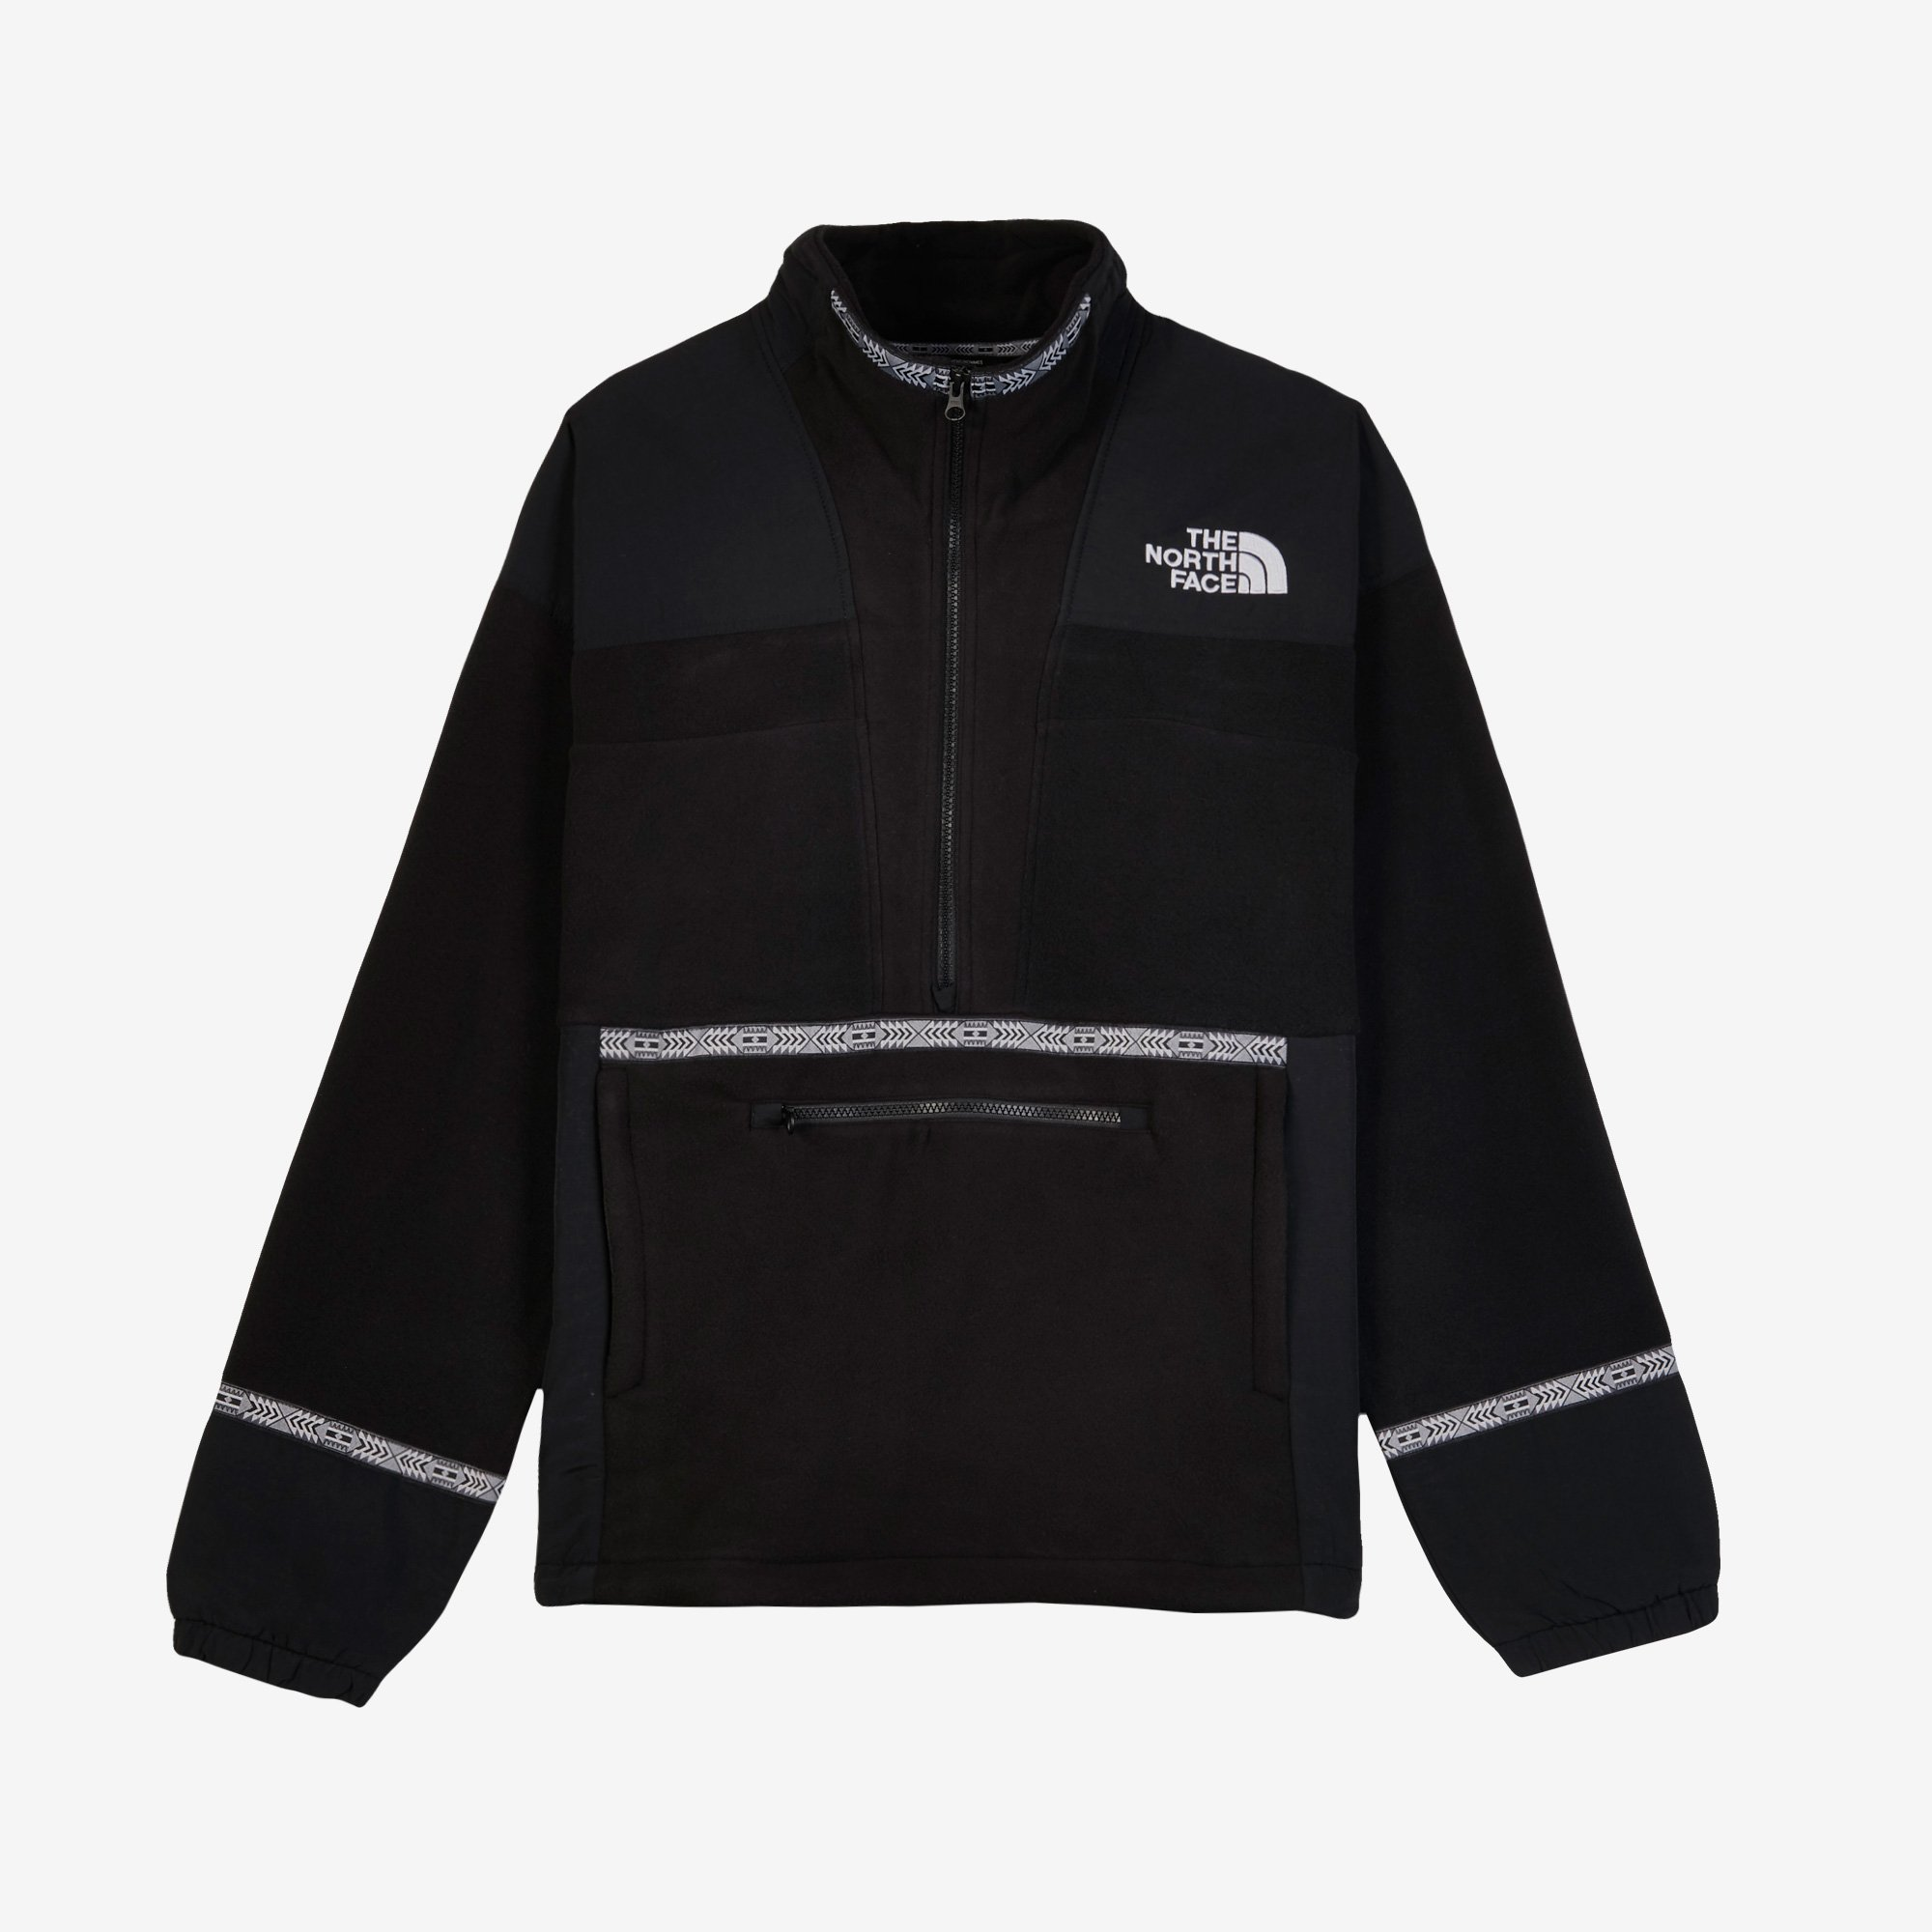 f9a5ca187 The North Face 92 Rage Fleece Anorak - Nf0a3mid - Sneakersnstuff ...